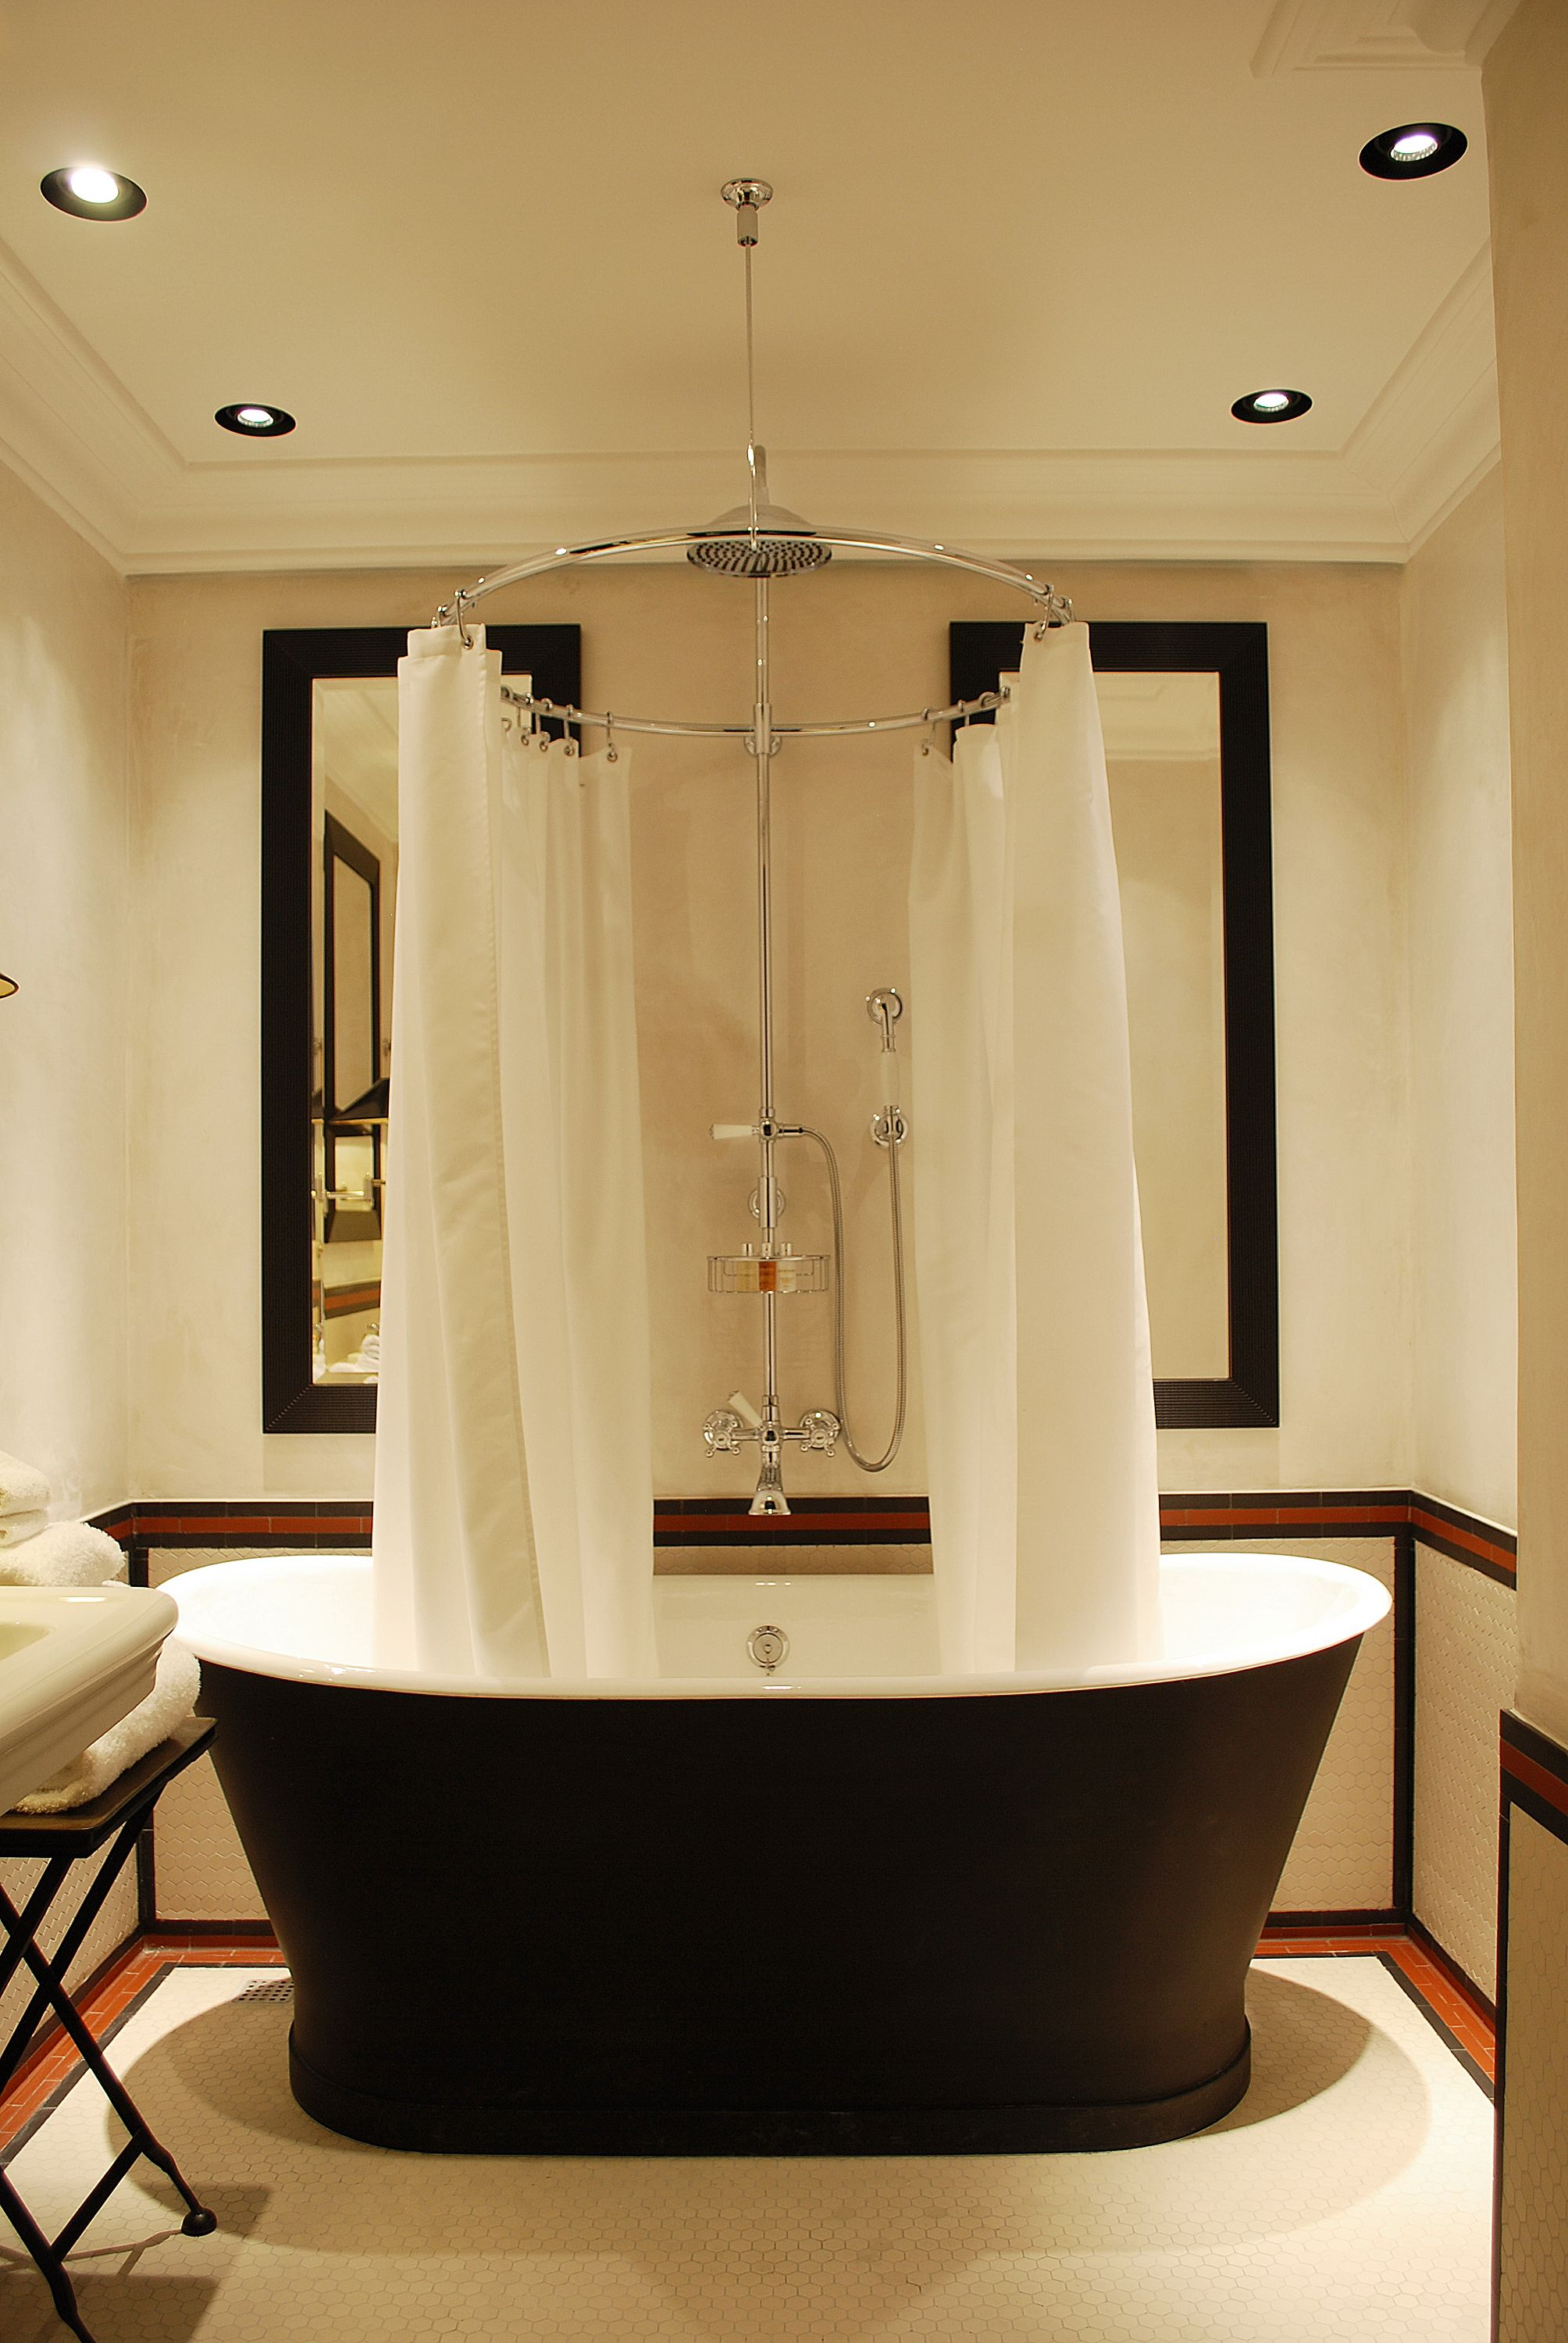 Stunning BathroomLove The Striking Black Bathtub Amp The